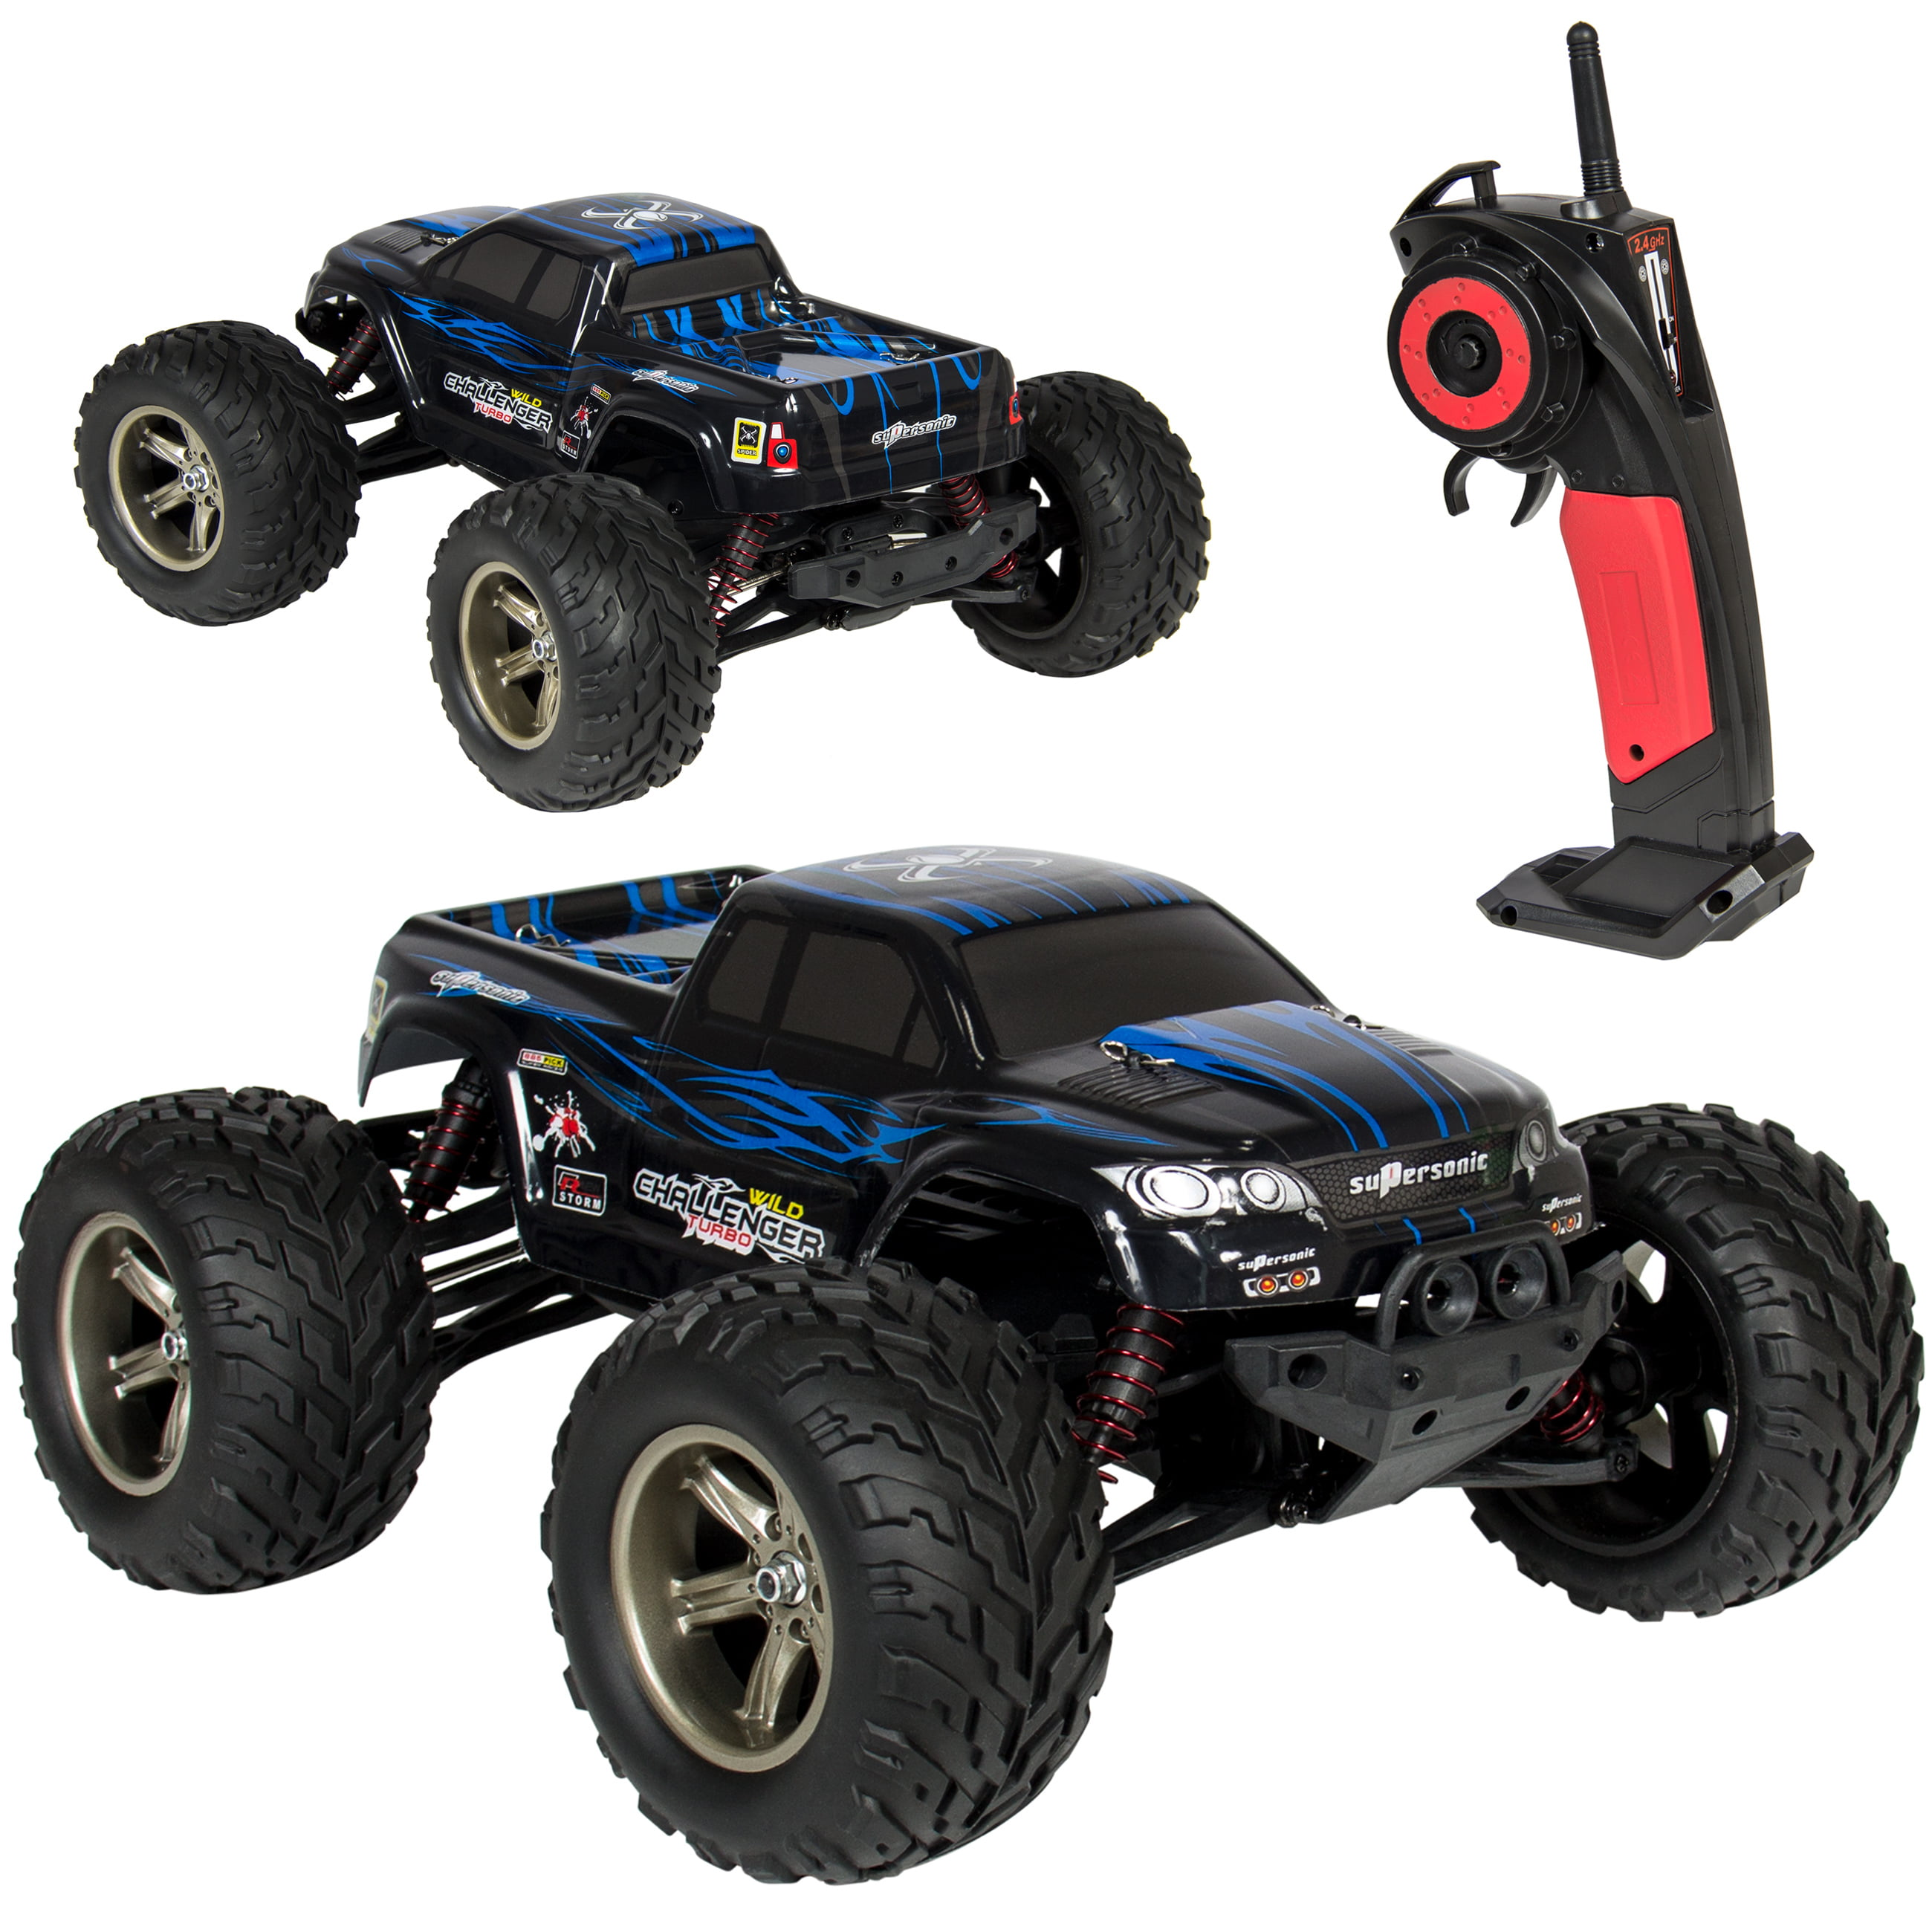 Best Choice Products 1 12 Scale 2.4GHZ Remote Control Truck Electric RC Car High Speed... by Best Choice Products